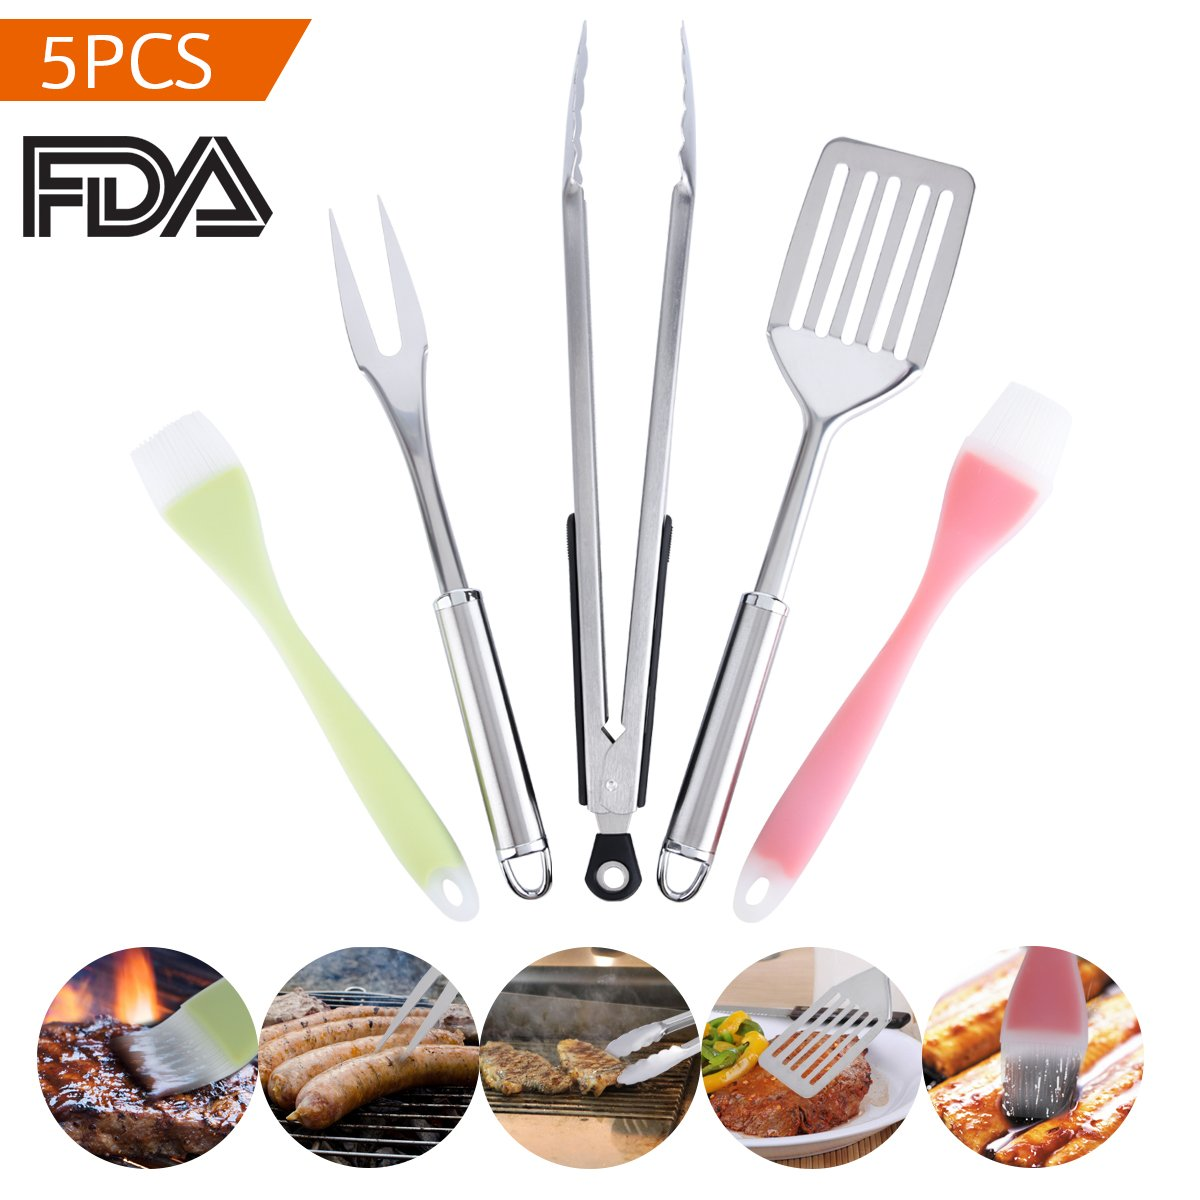 BBQ Grill Tools Set Kitchen Tools Stainless Steel Tongs 14 Inch Spatula 14Inch Fork 13 Inch Silicone Brush 10 Inch Set of 5 Joy Looker COMINHKPR138740